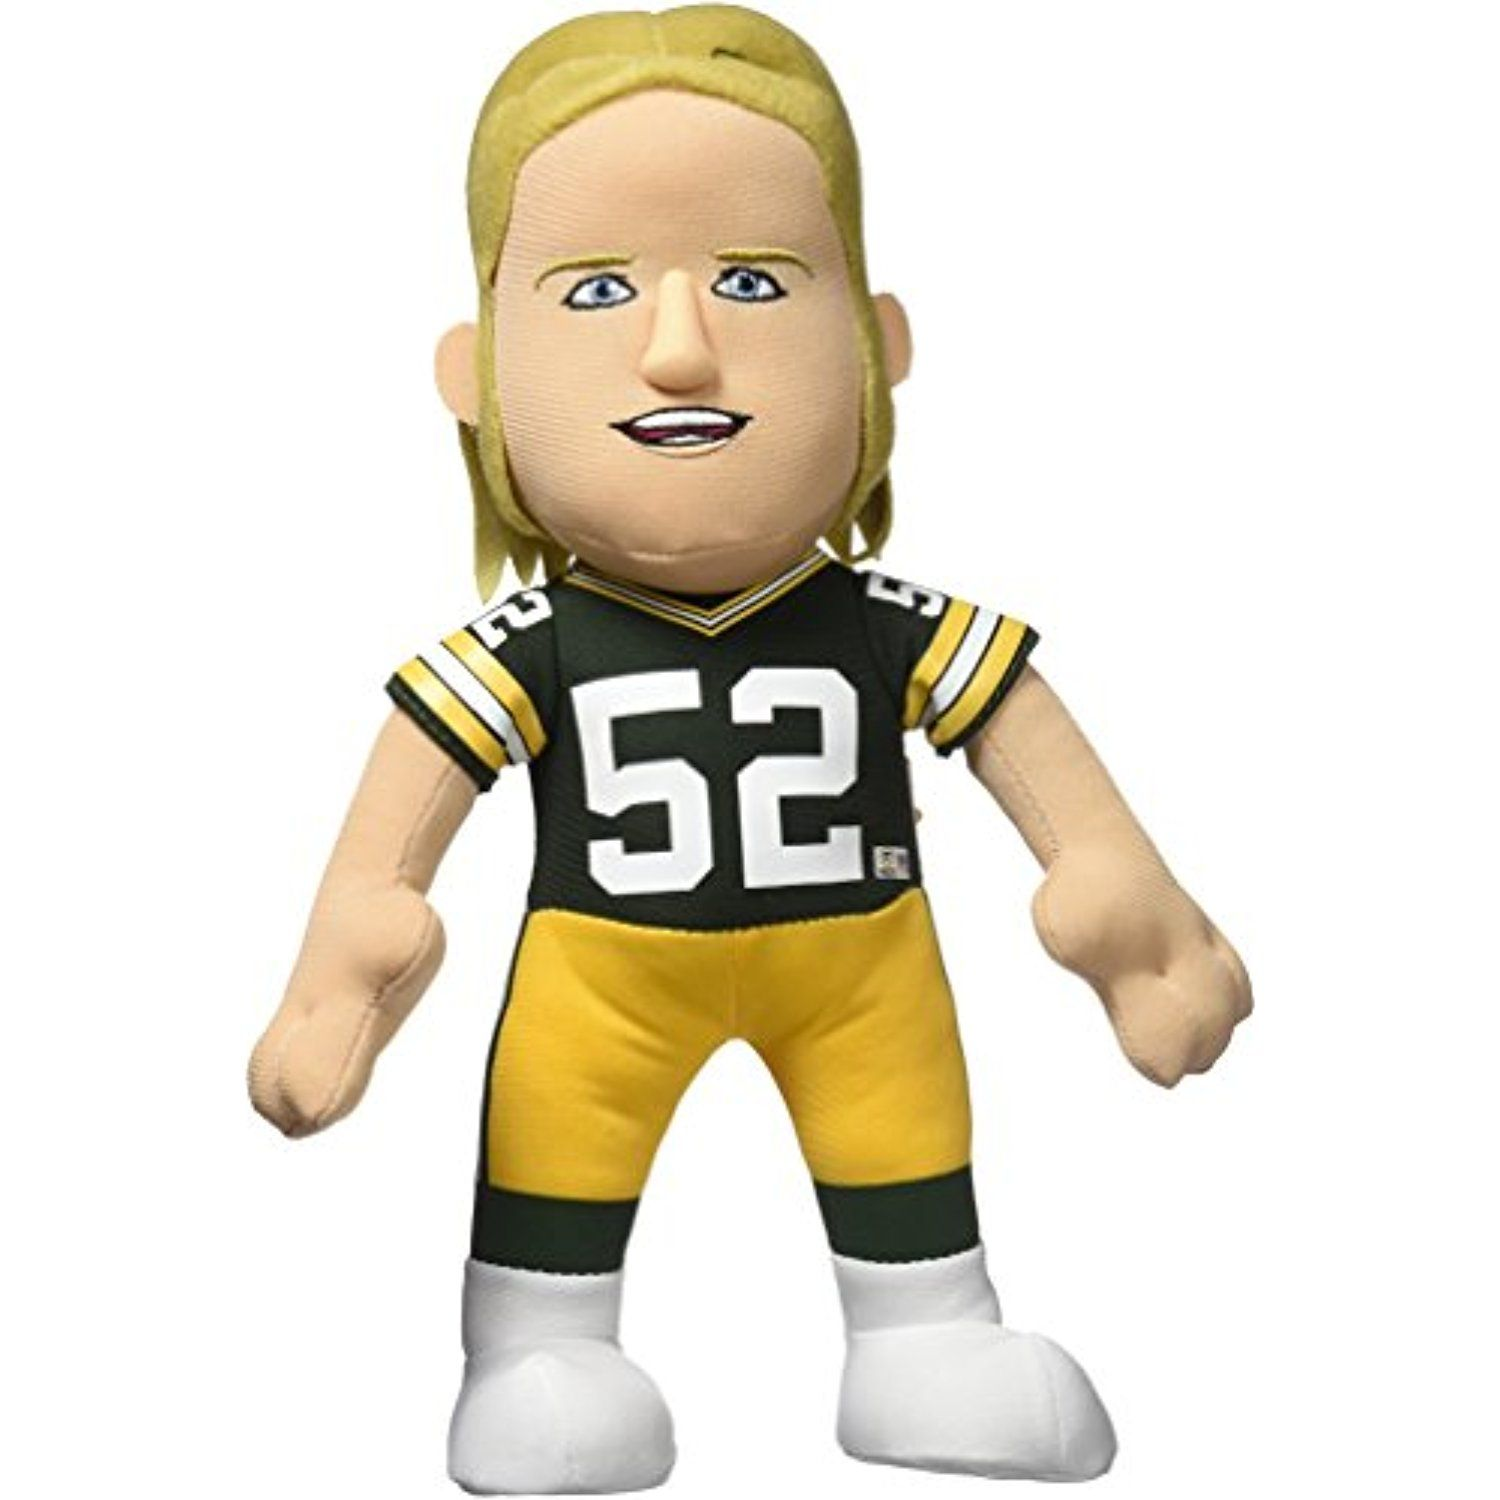 Nfl Green Bay Packers Clay Matthews Player Plush Doll 6 5 Inch X 3 5 Inch X 10 Inch Green Details Can Be Found By C Clay Matthews Plush Dolls Nfl Packers